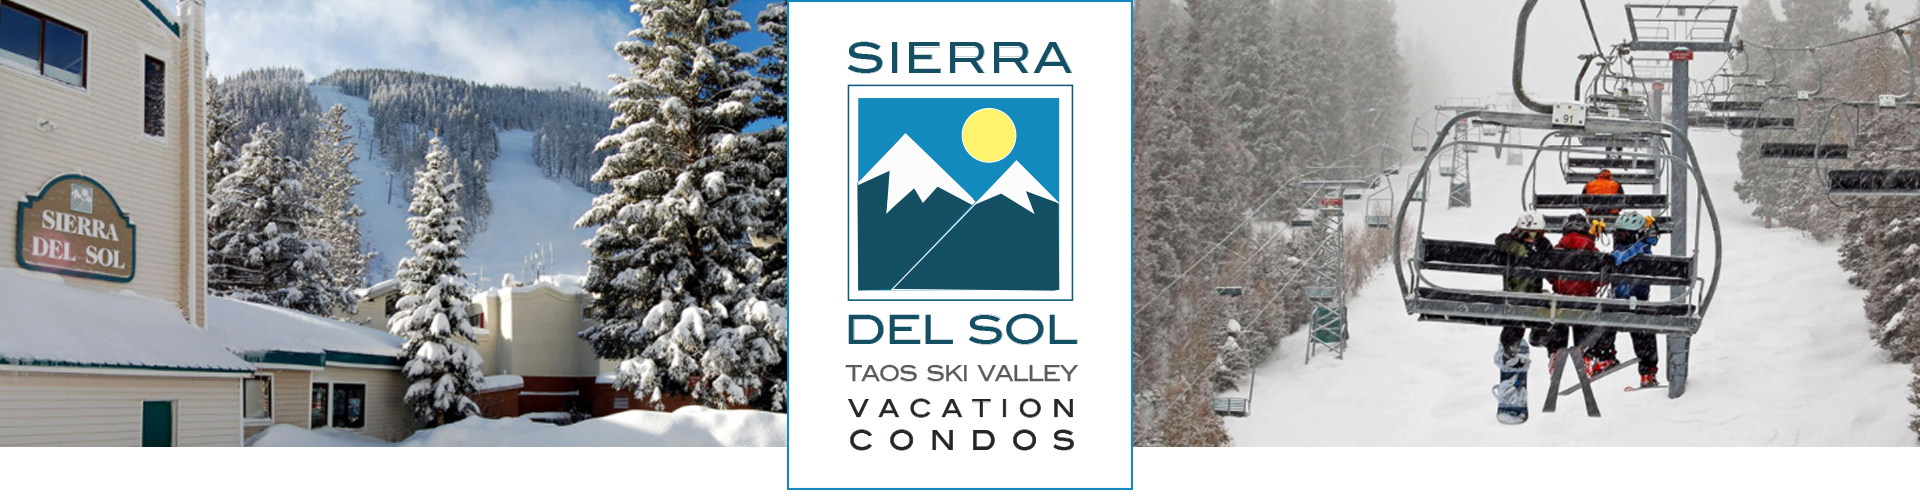 Sierra Del Sol Condominiums | Taos Ski Valley